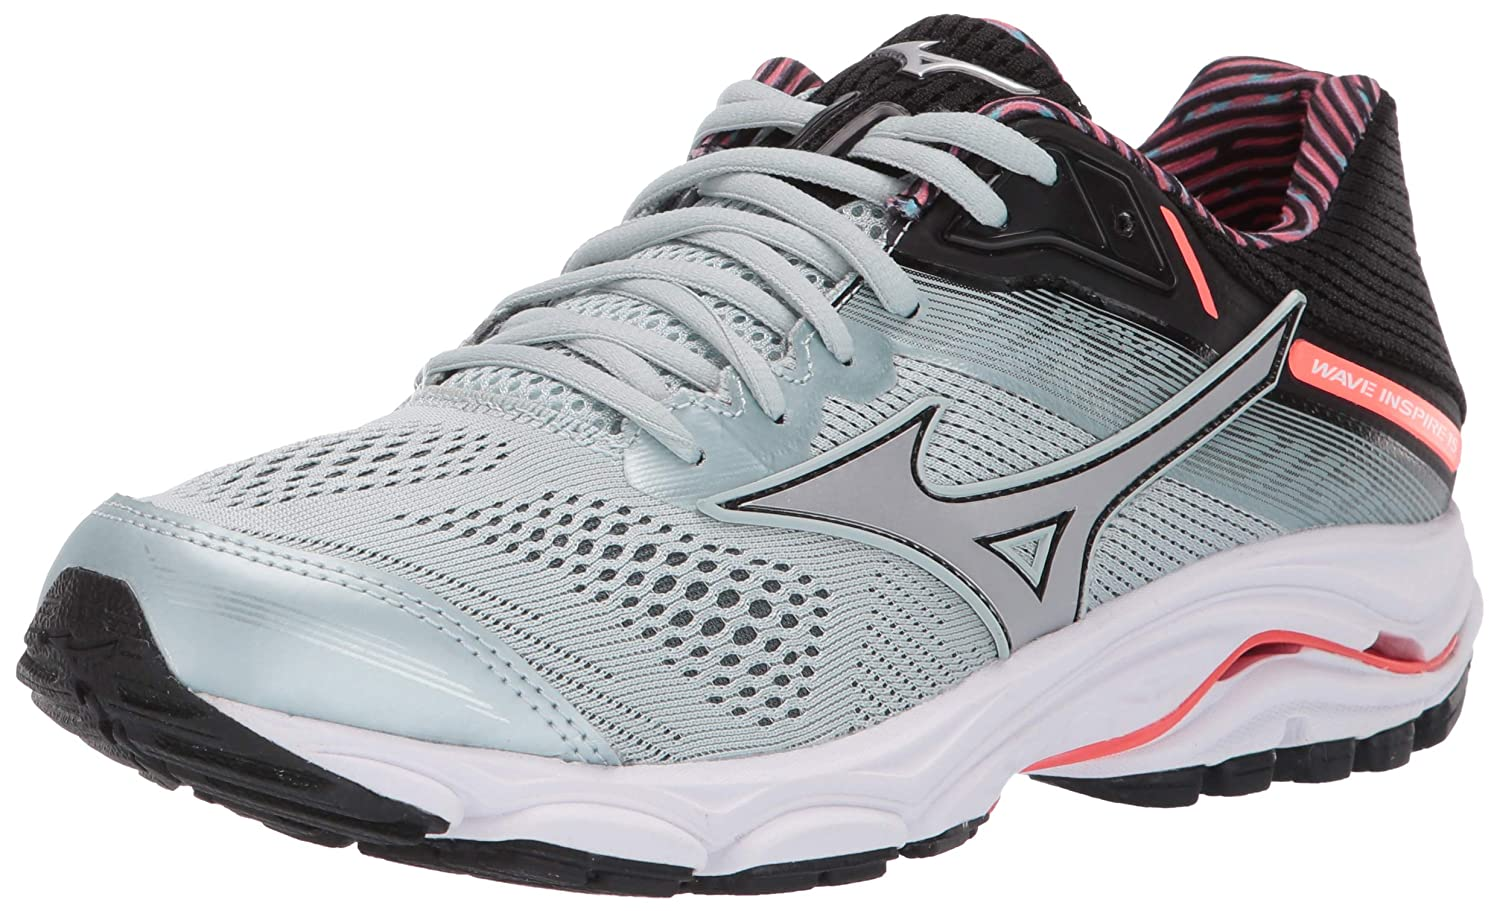 best mizuno shoes for walking everyday zero down payment review